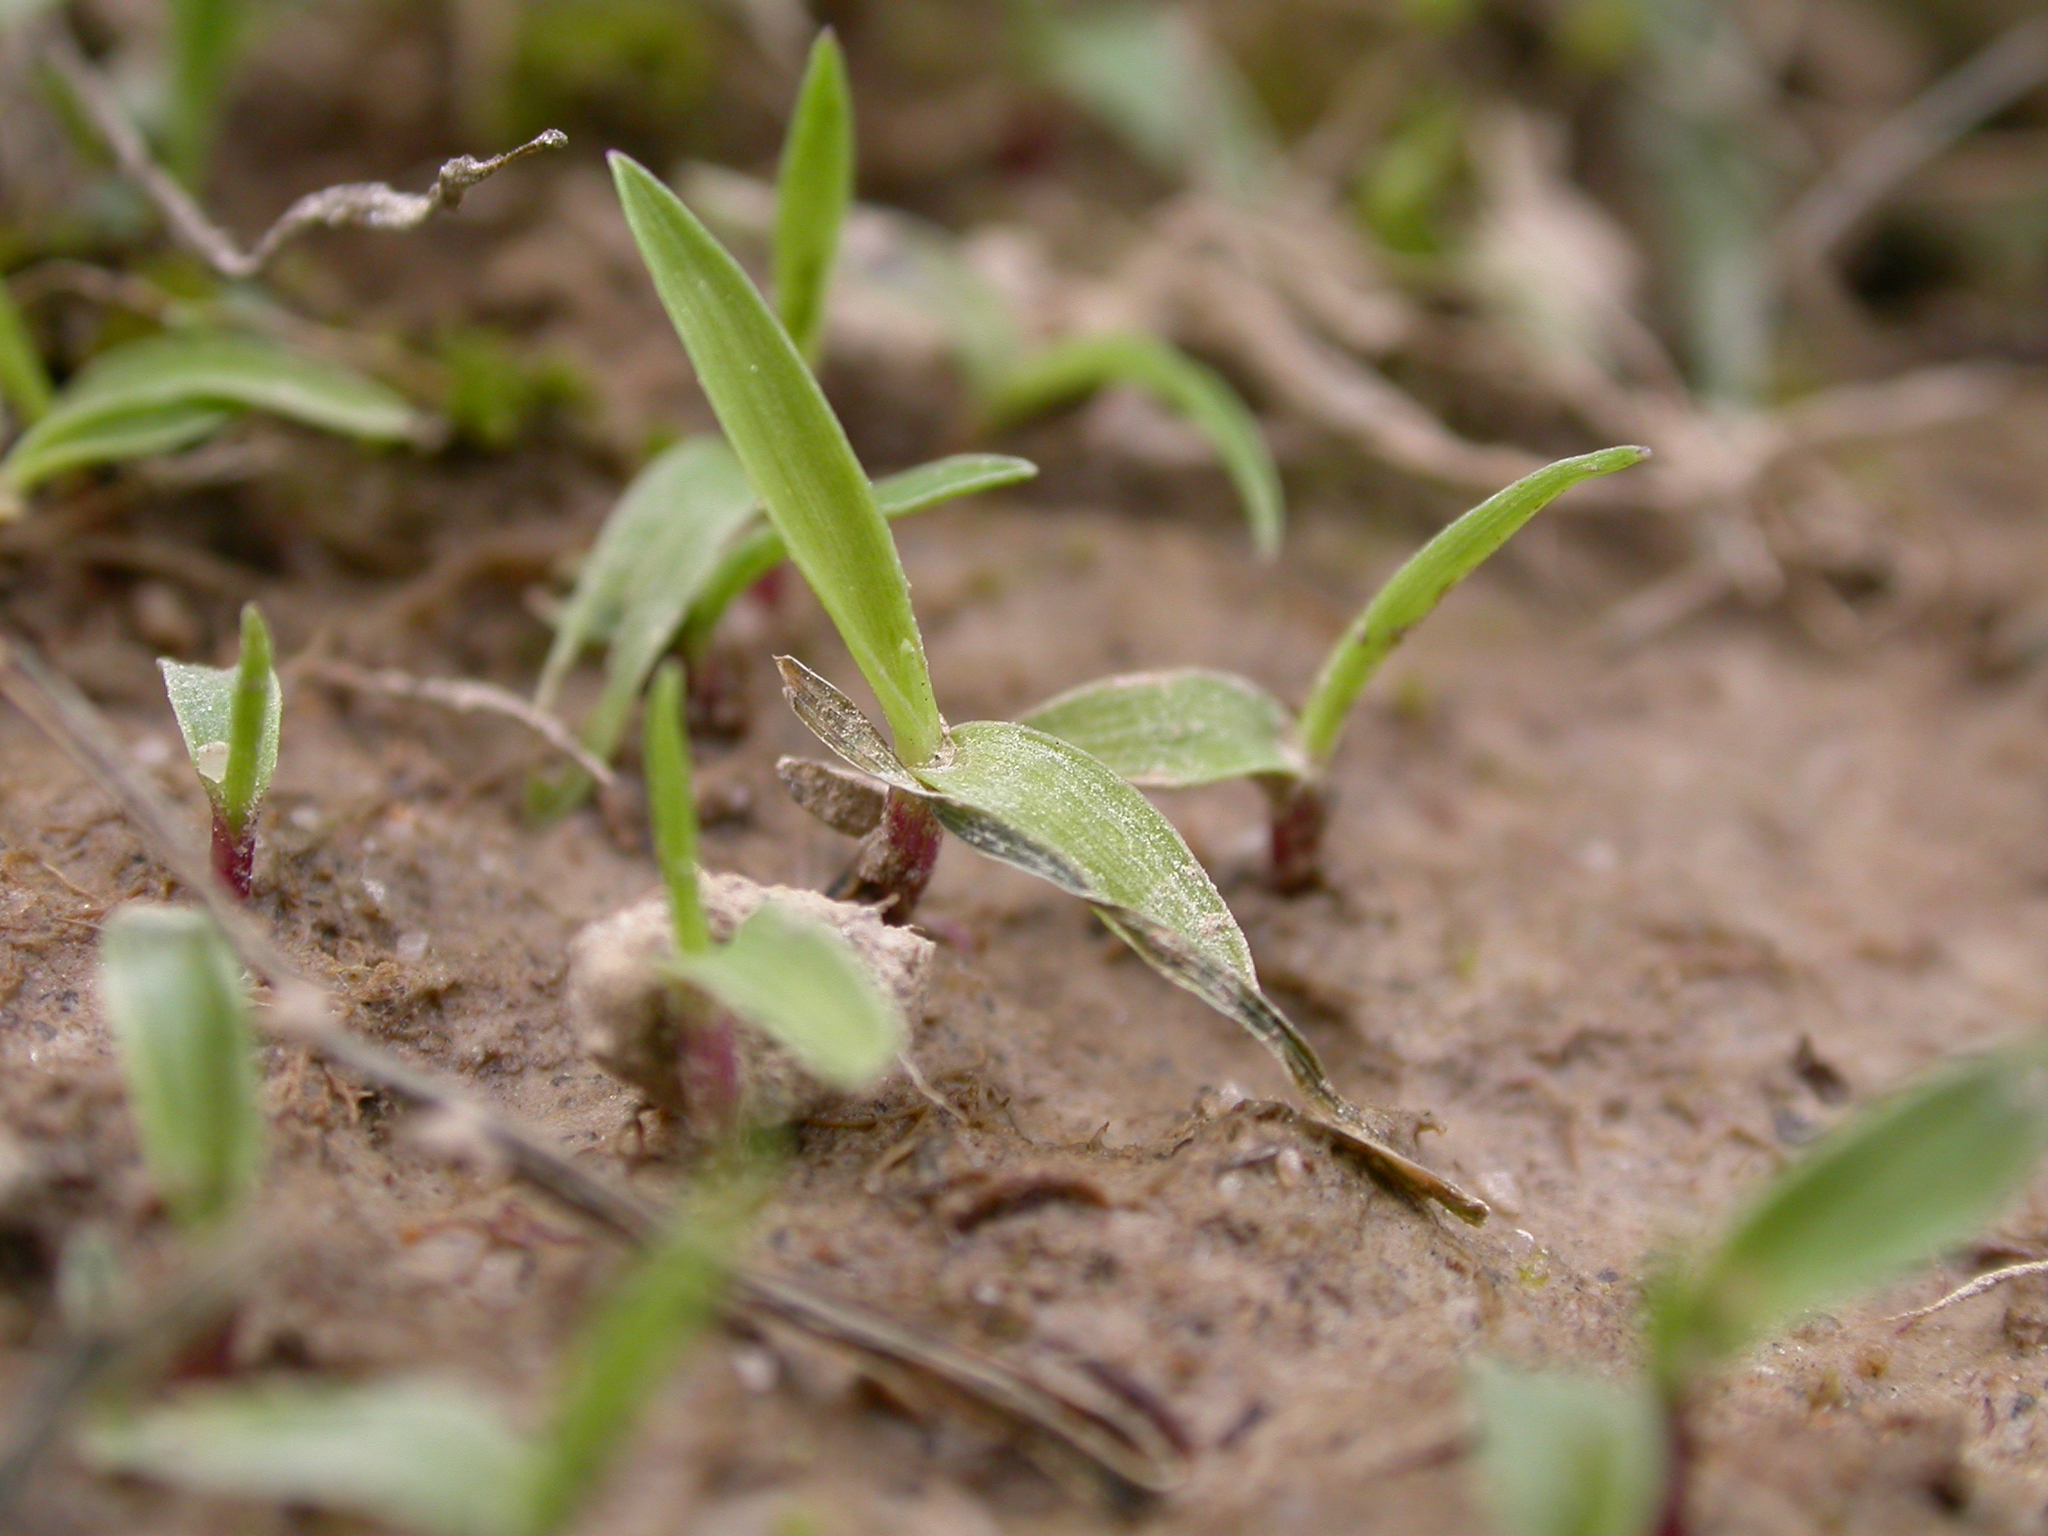 Crabgrass Germination